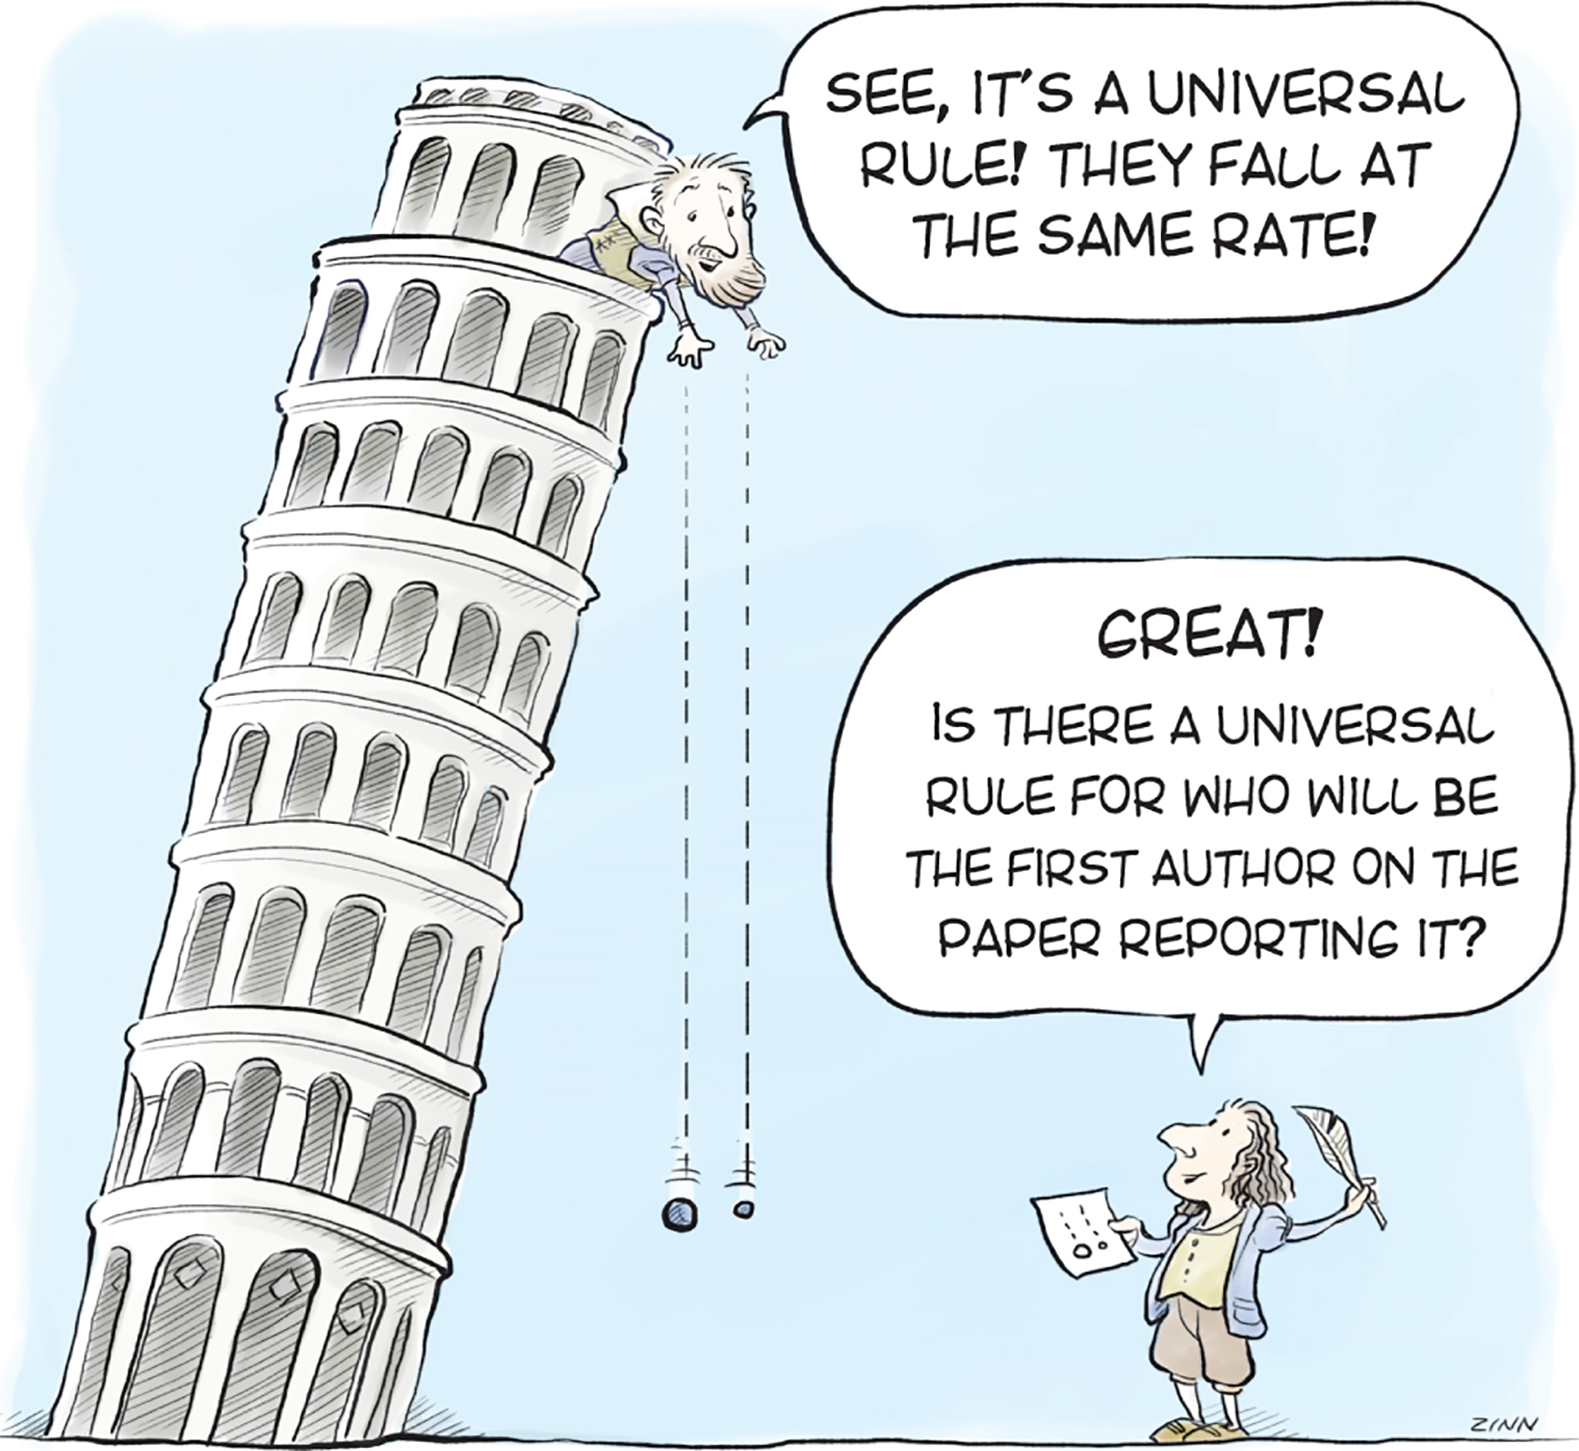 Cartoon of The Leaning Tower of Pisa commenting on authorship disputes